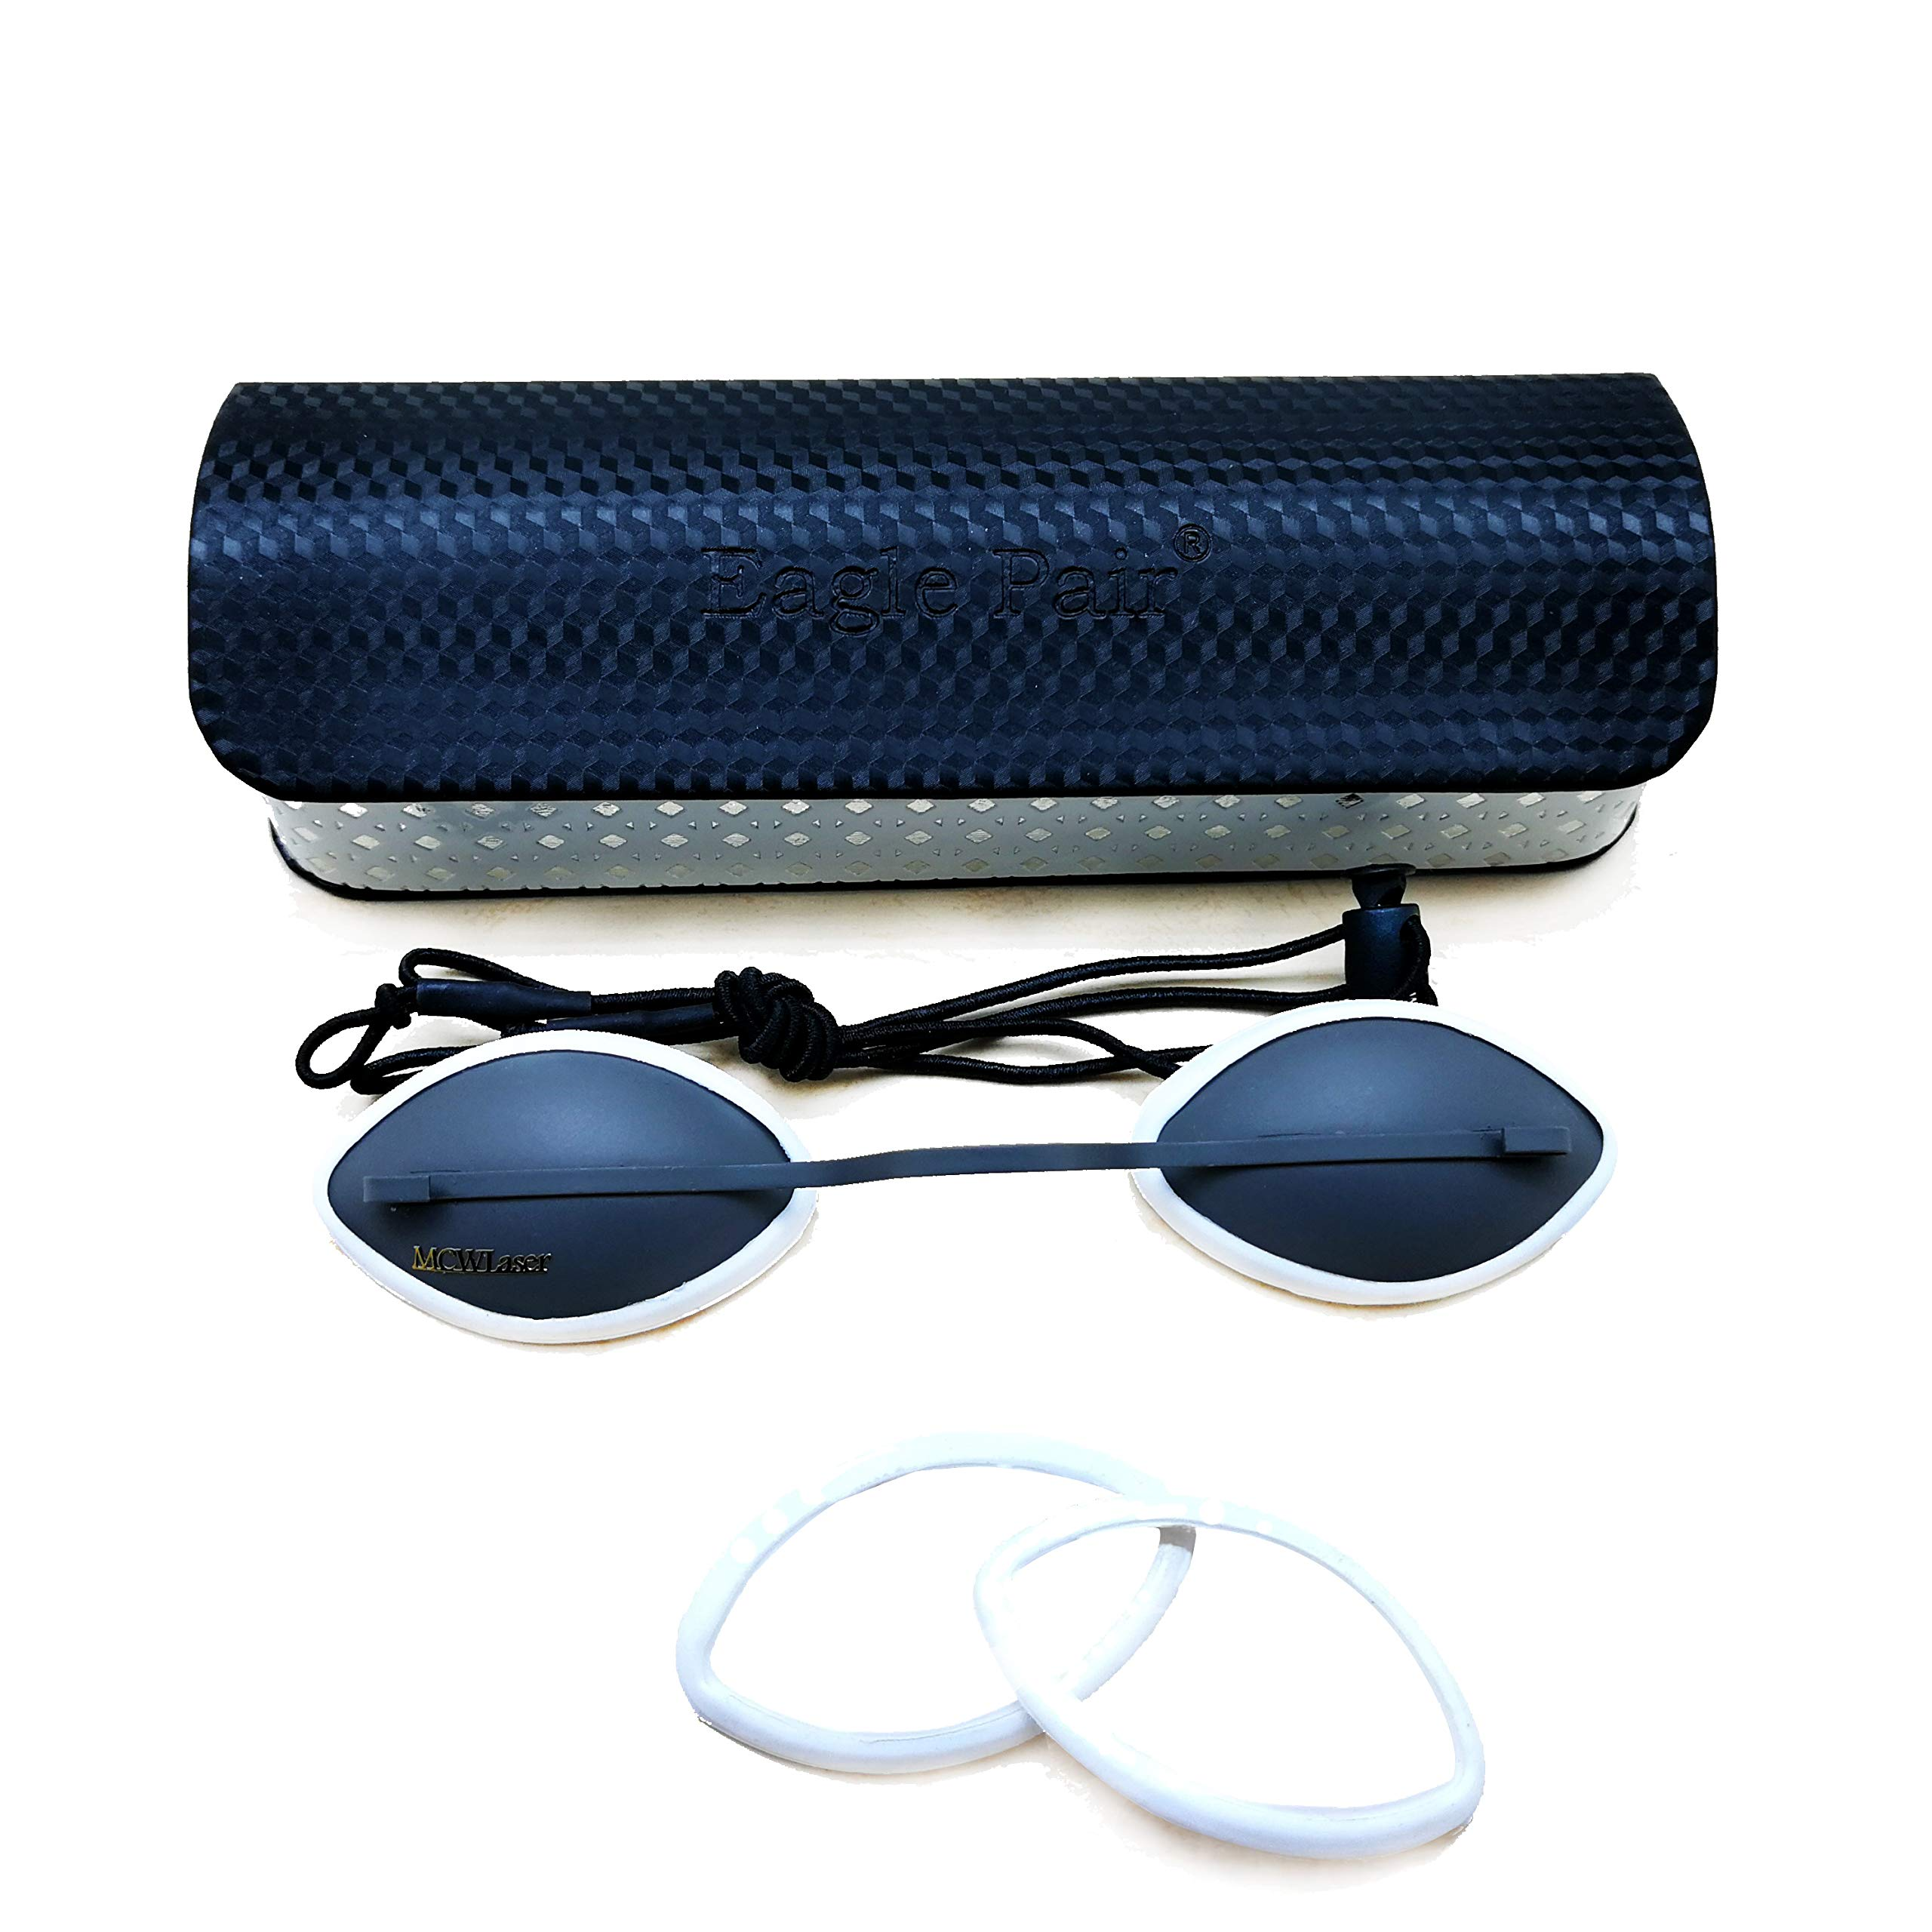 Cole OD7+ Eyepatch Glasses Laser Protection Safety Goggles IPL Beauty Stainless Steel